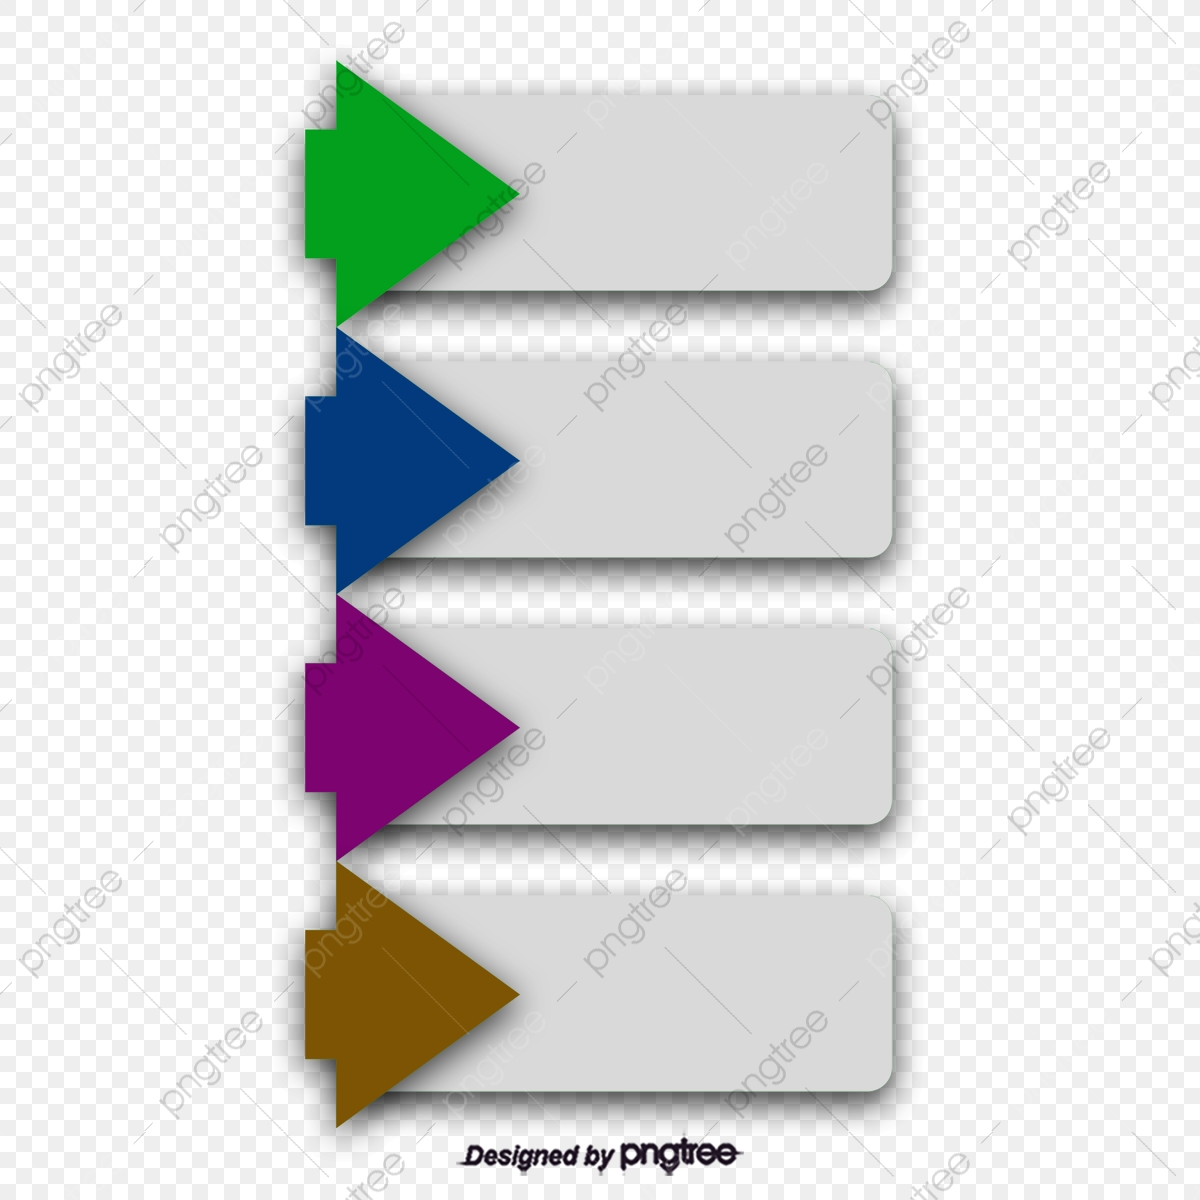 Business Ppt Sequence, Folding, Business, Ppt PNG and Vector with